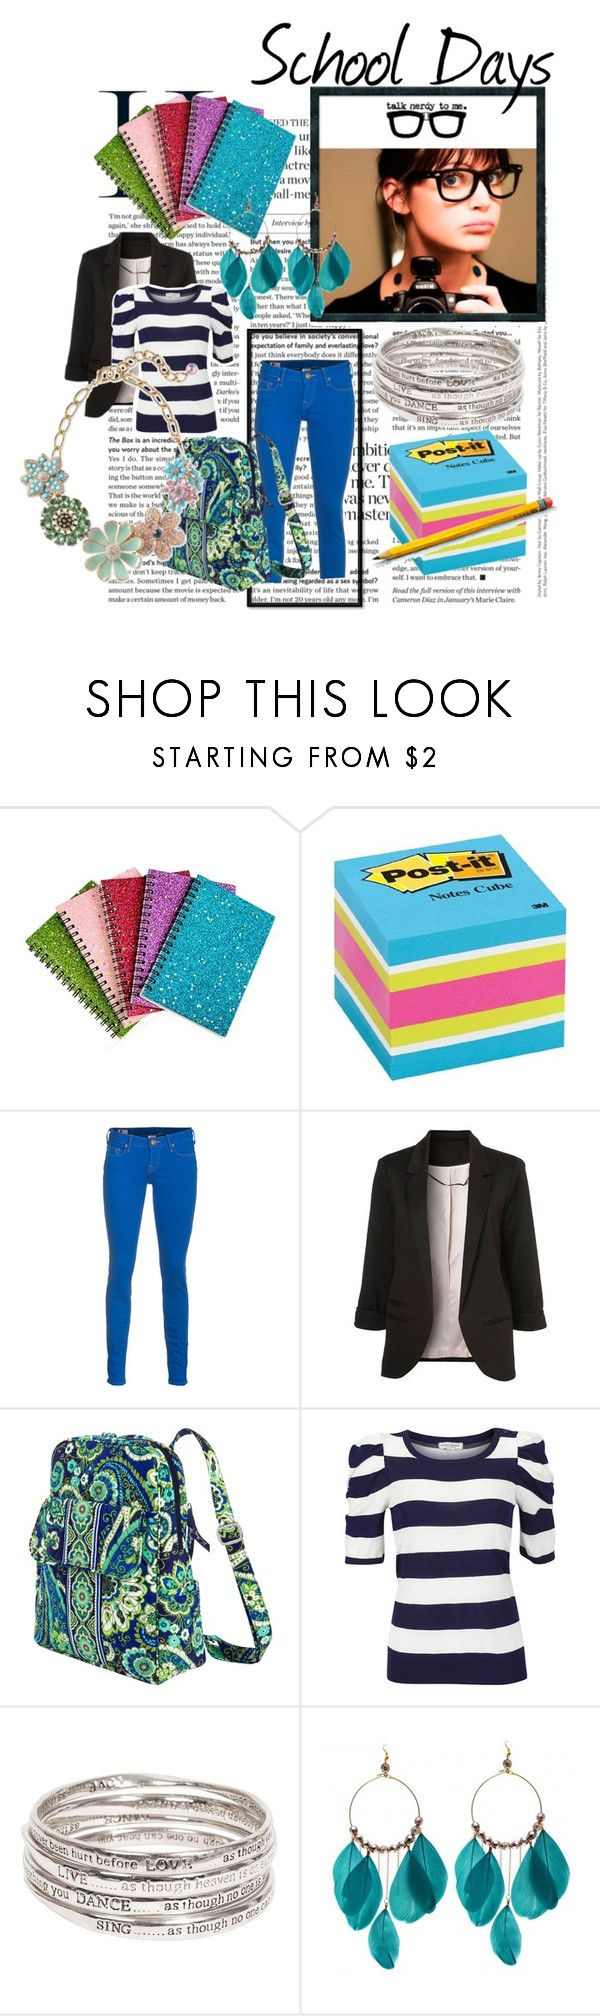 """""""Untitled #7"""" by gbrown112 ❤ liked on Polyvore featuring Darice, Post-It, True Religion, Vera Bradley and Margit Brandt"""